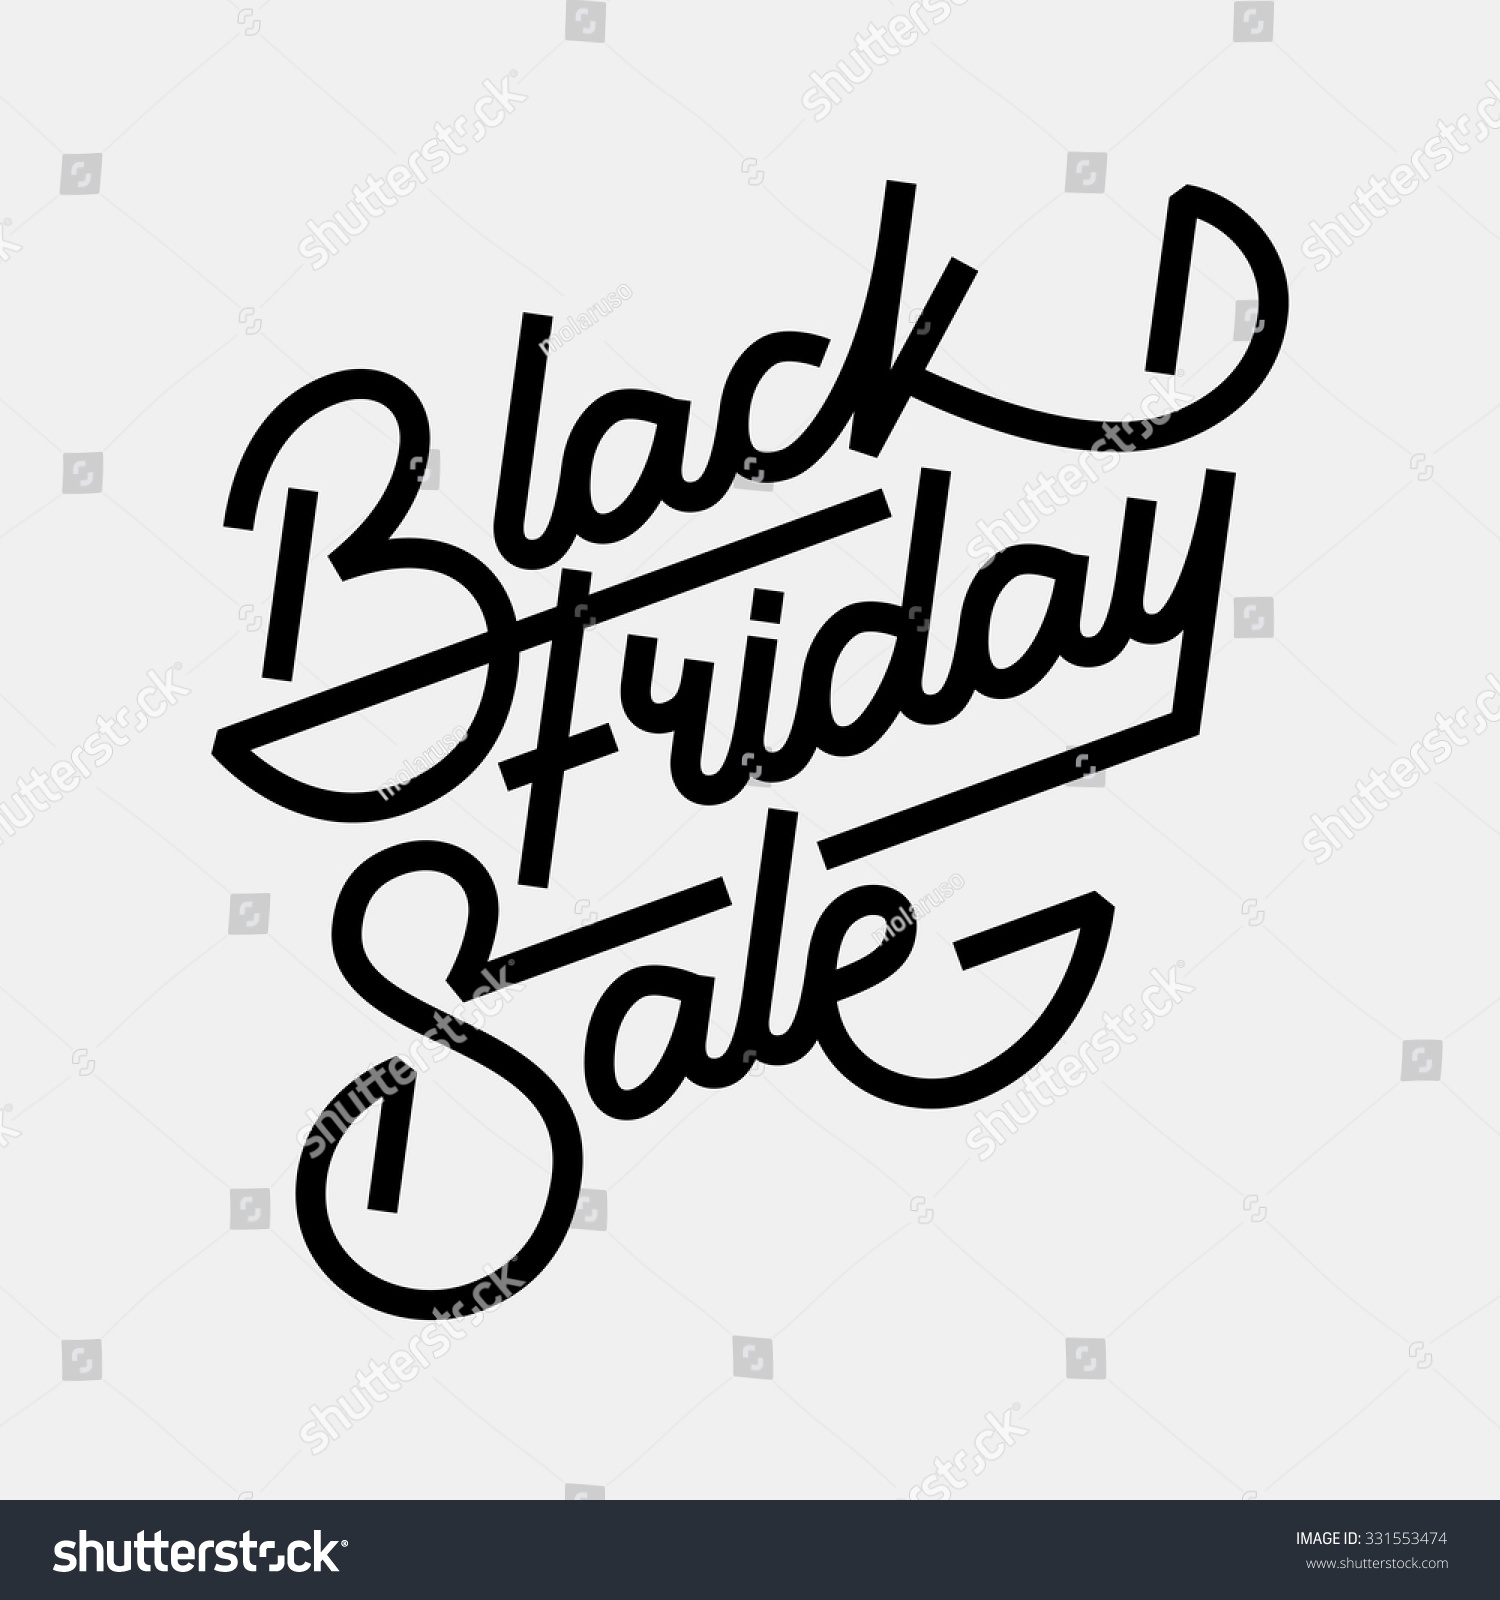 Black Friday Sale Handmade Lettering Calligraphy With